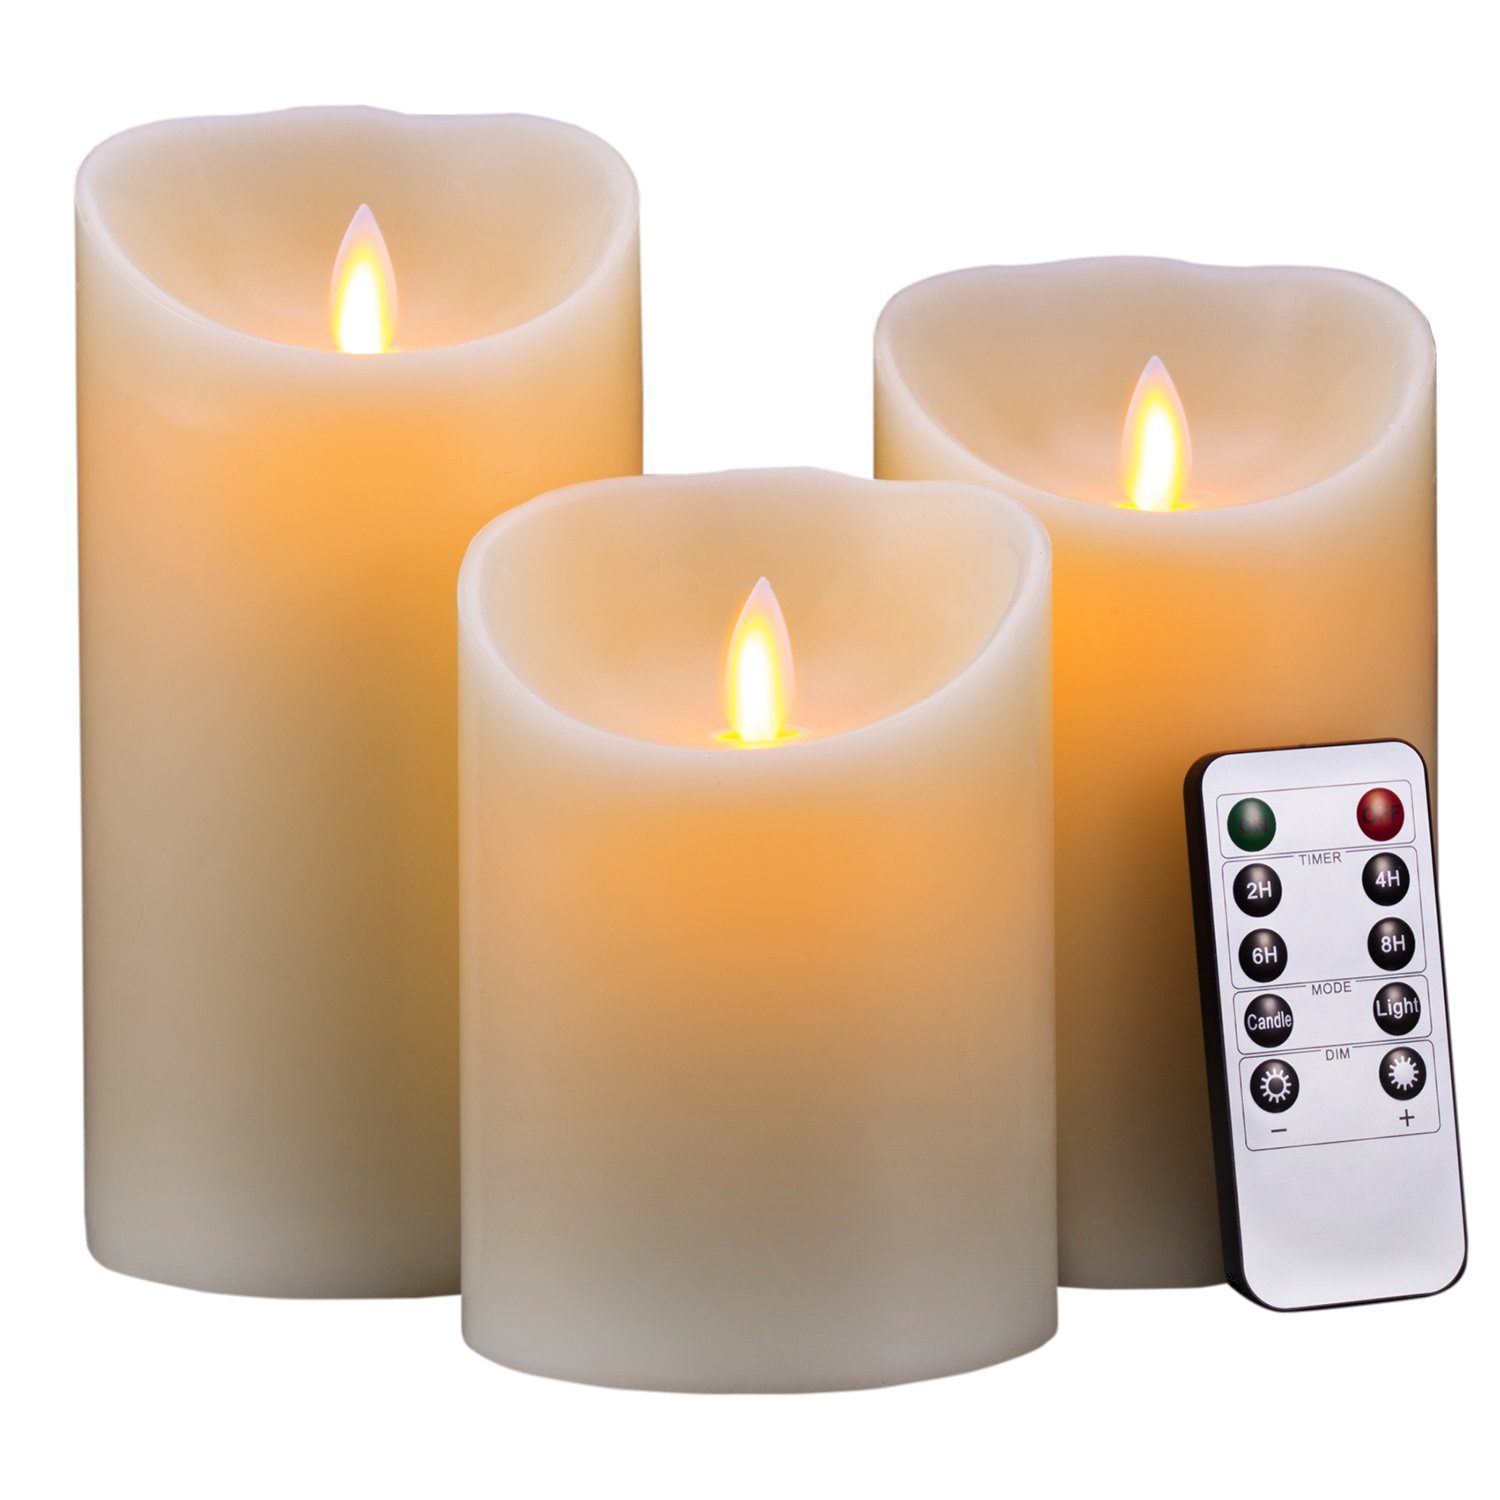 "Flameless Candles, Super Long Battery Life 400 Hours Lighting Time 2C Cell Battery Operated LED Flickering Pillar Candles Diameter 3.5'' Height 5""6""7"" with Remote Timer by Hausware"